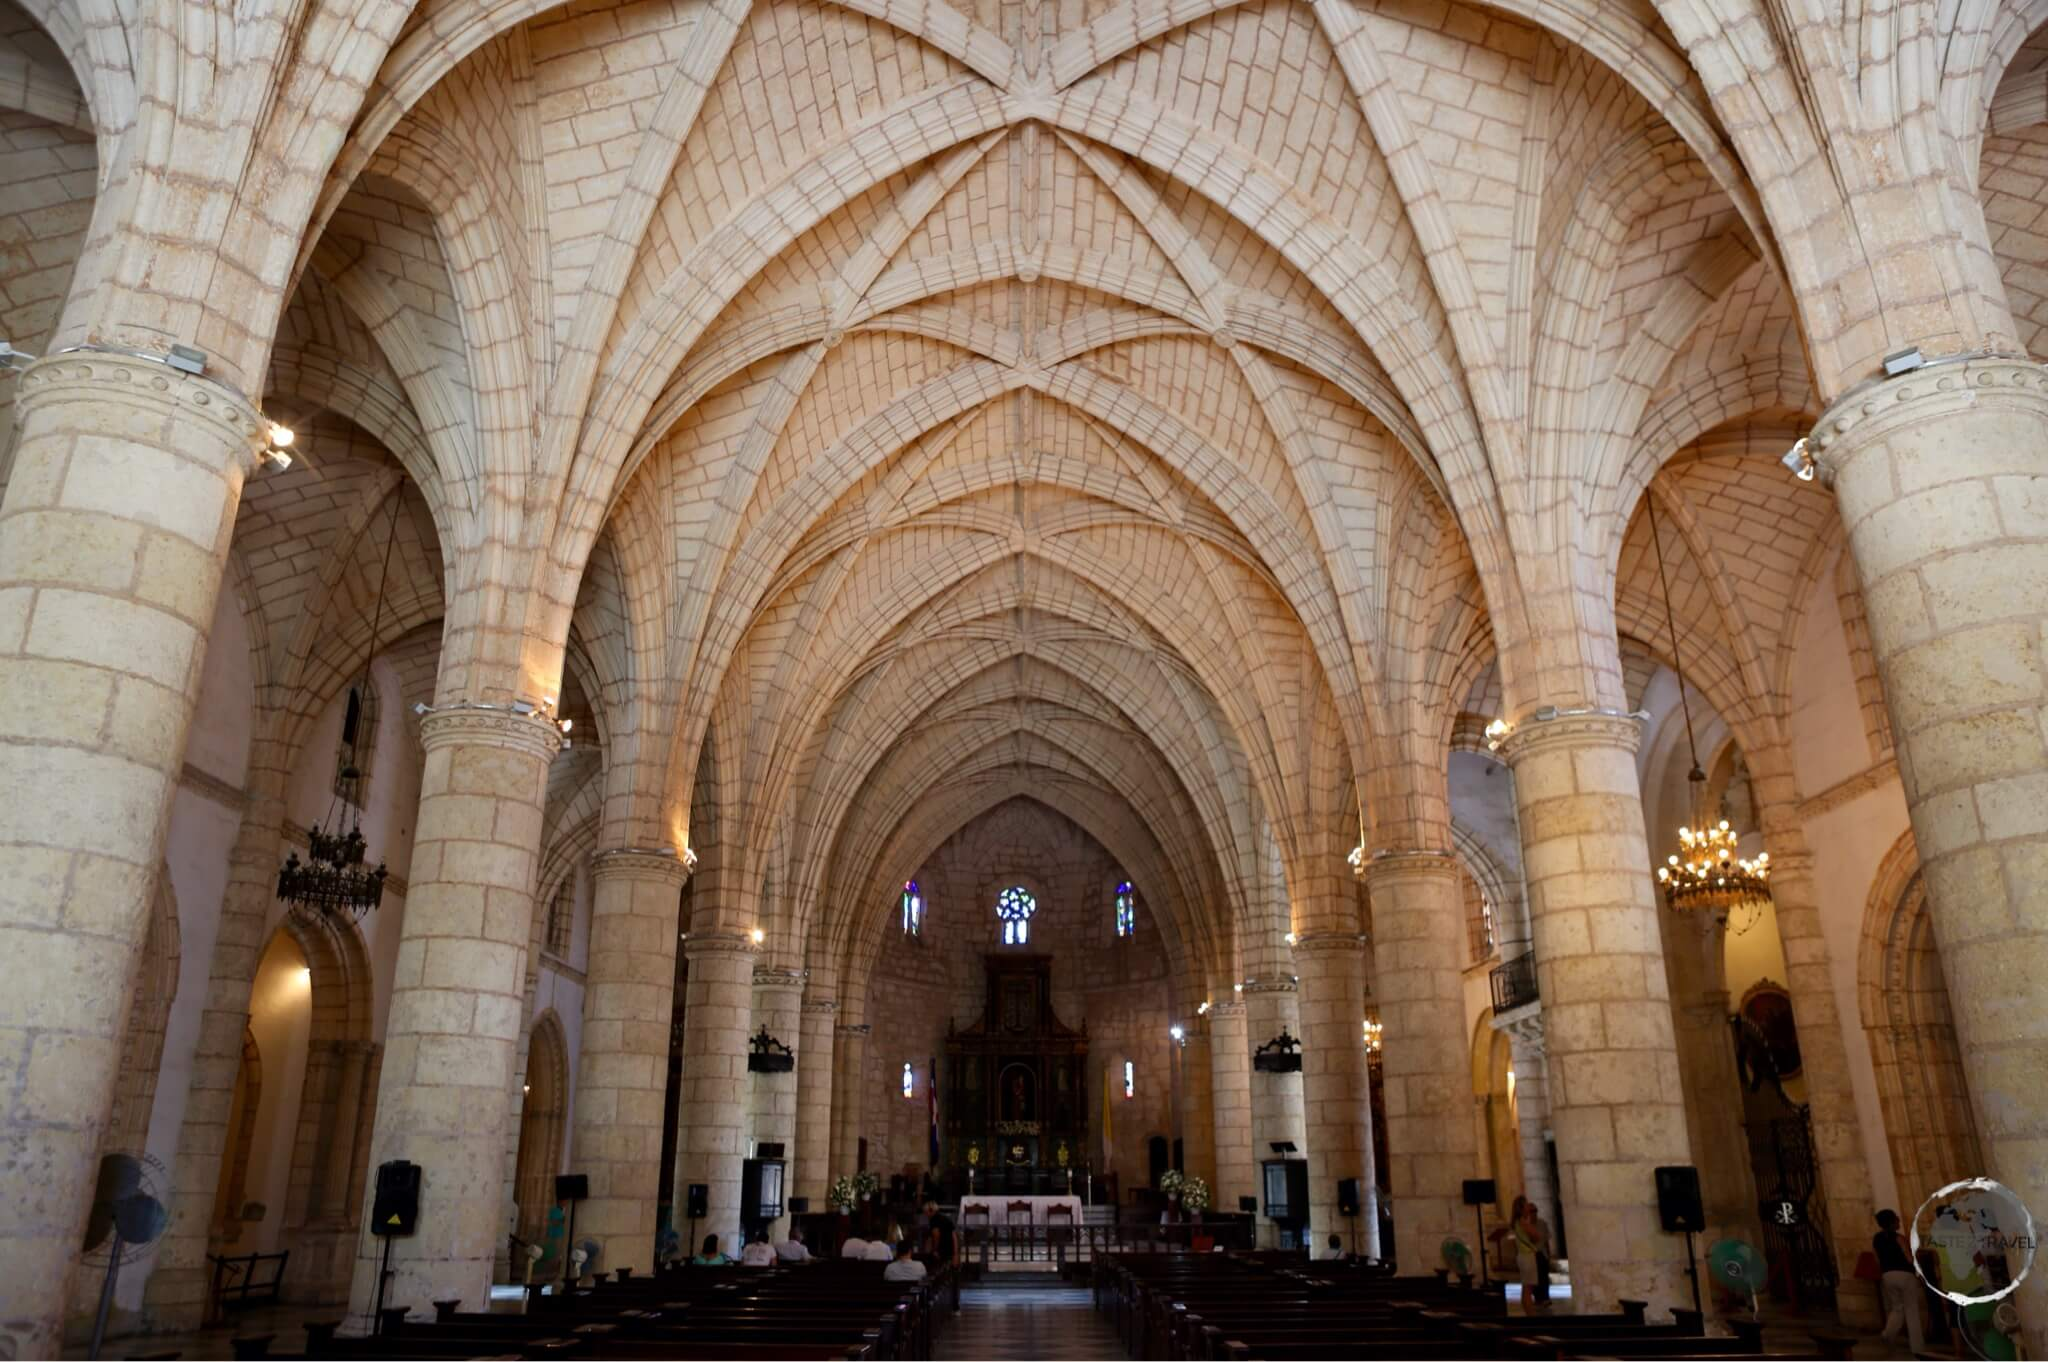 Interior of the first Cathedral built in the Americas - Catedral Primada de América.